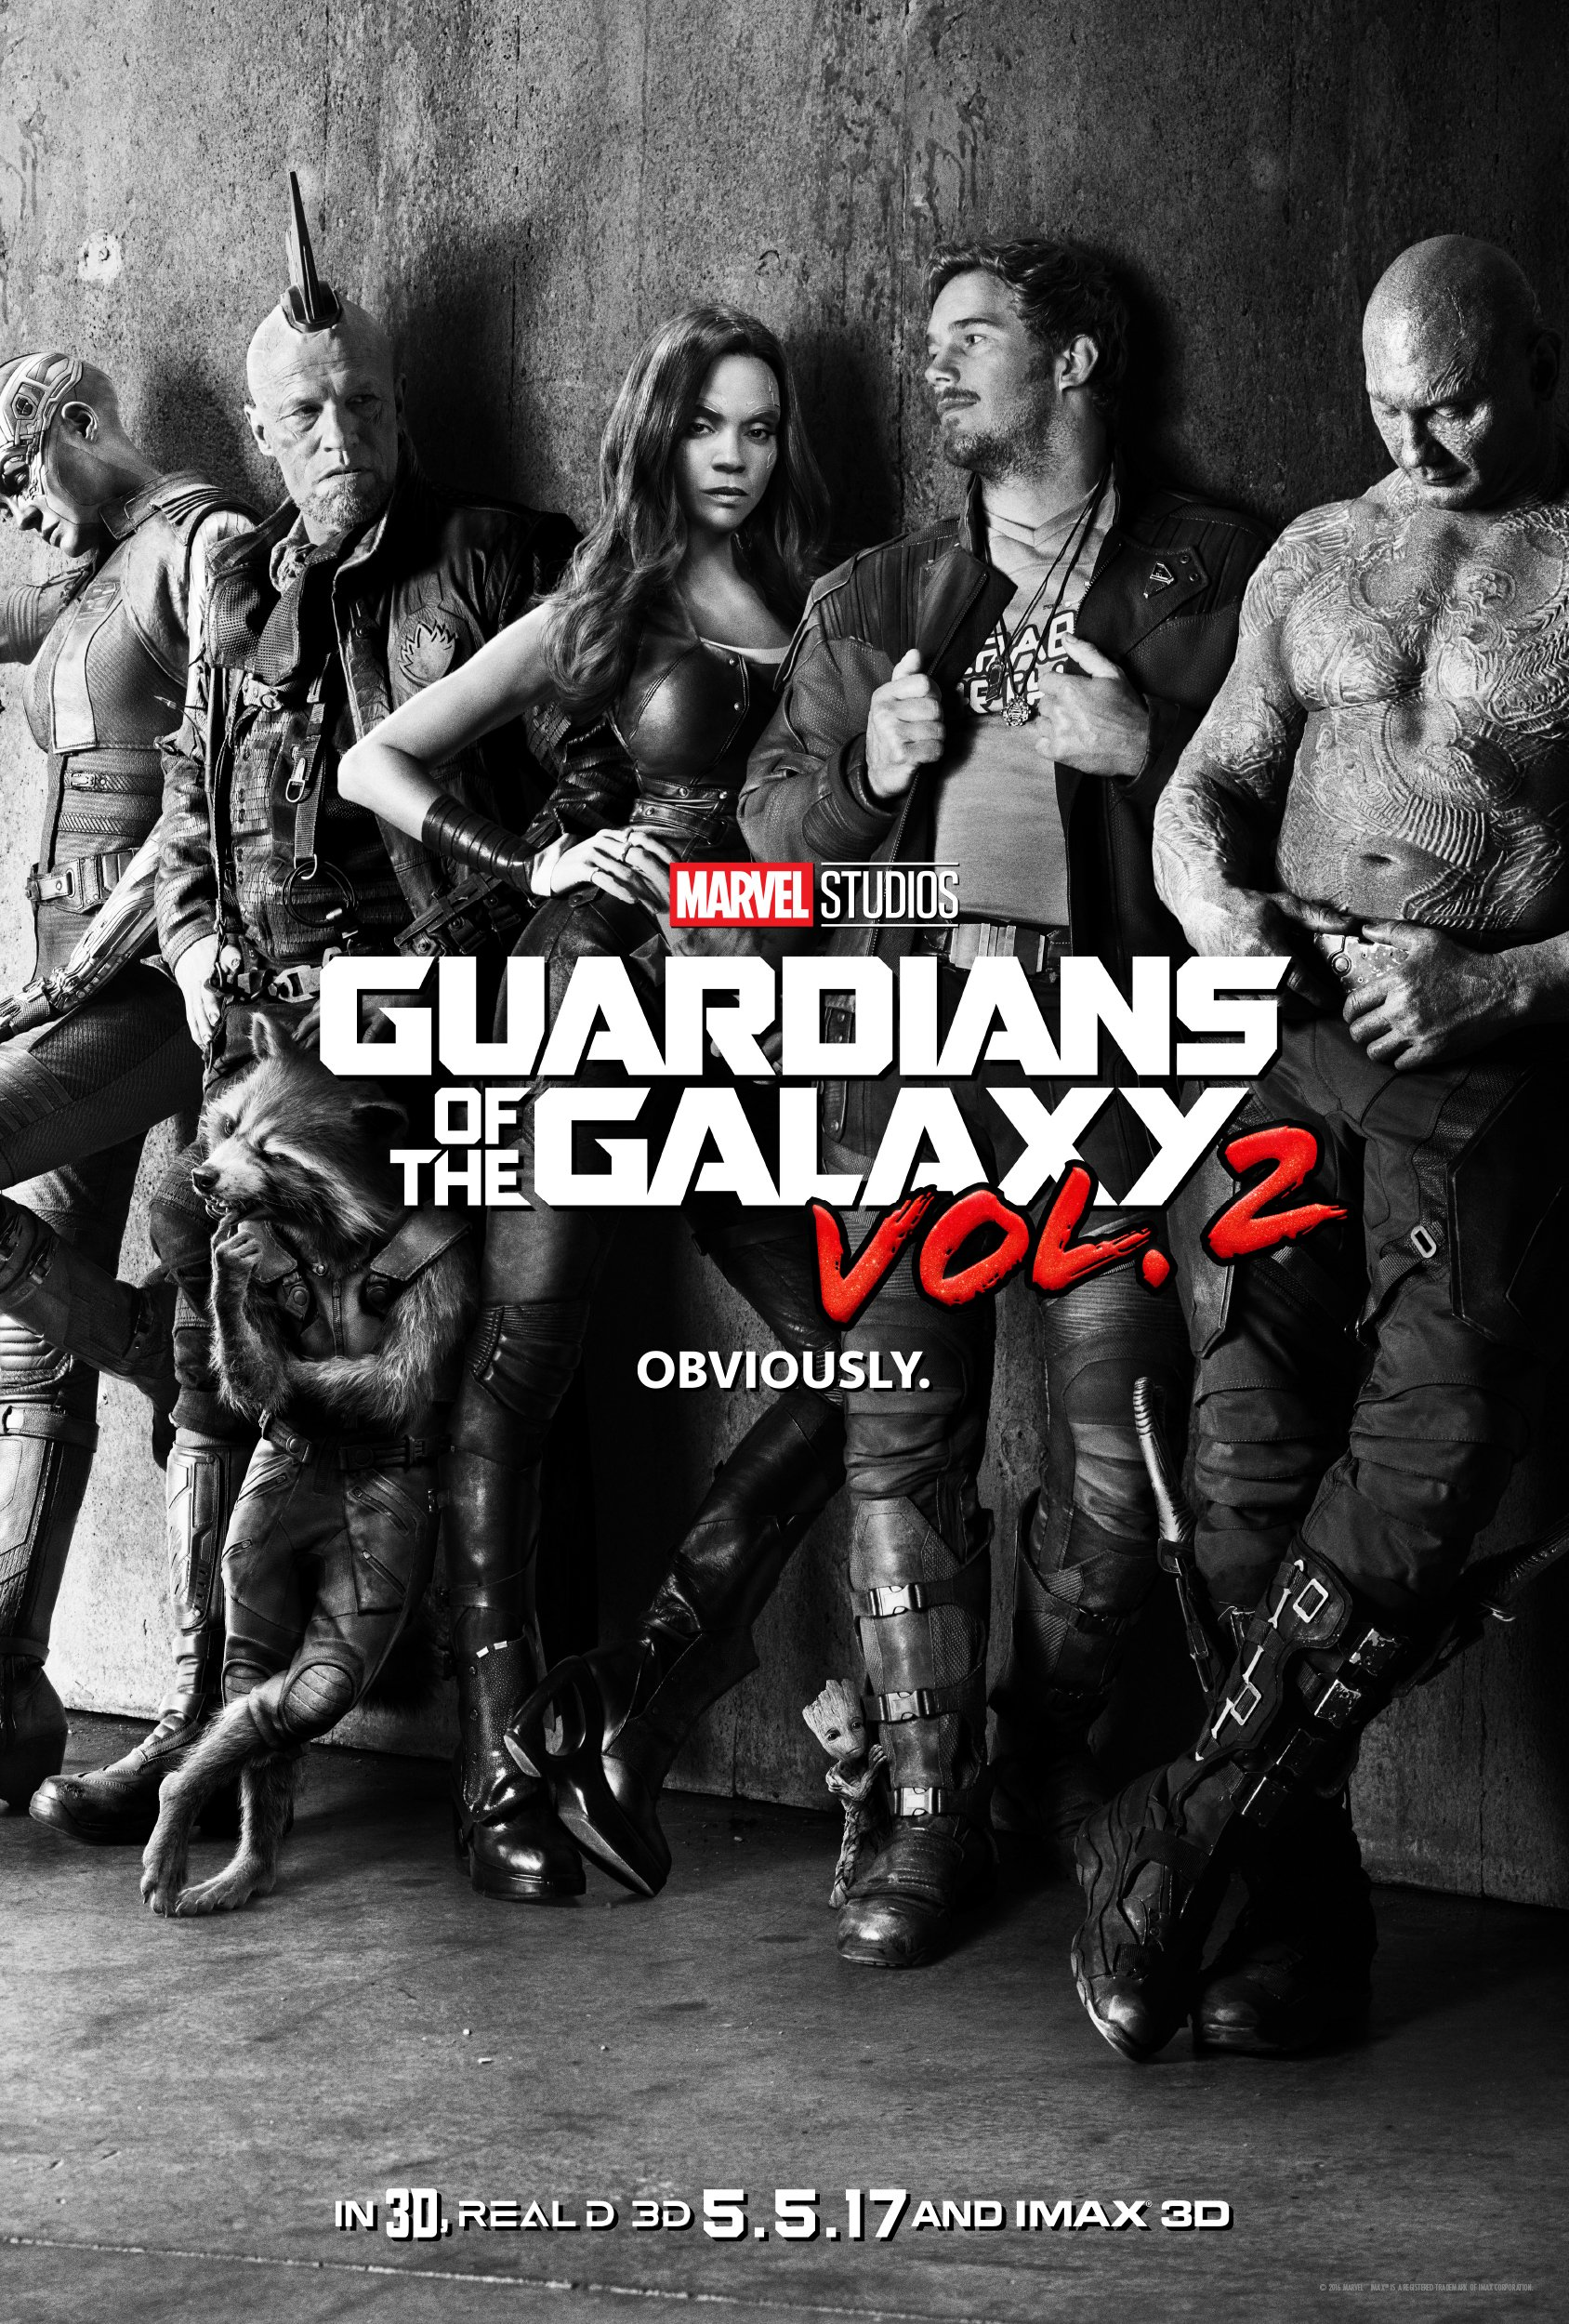 The 'Guardians of the Galaxy Vol. 2' teaser poster